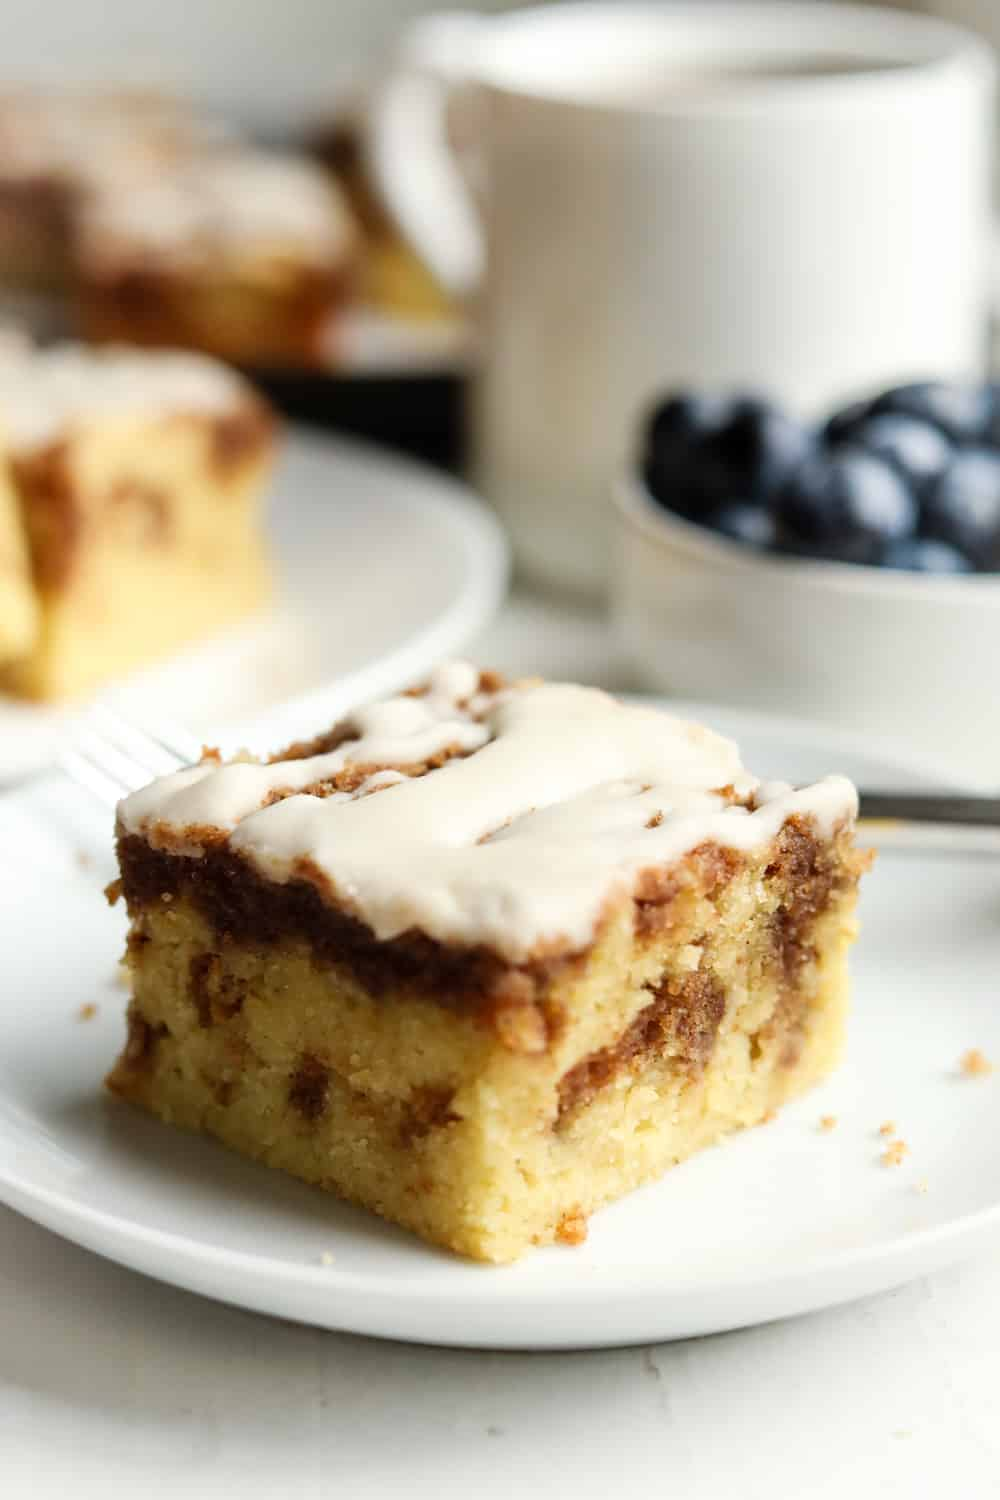 A piece of coffee cake on a white plate. There are more pieces in the background along with a cup of coffee and a bowl of blueberries.